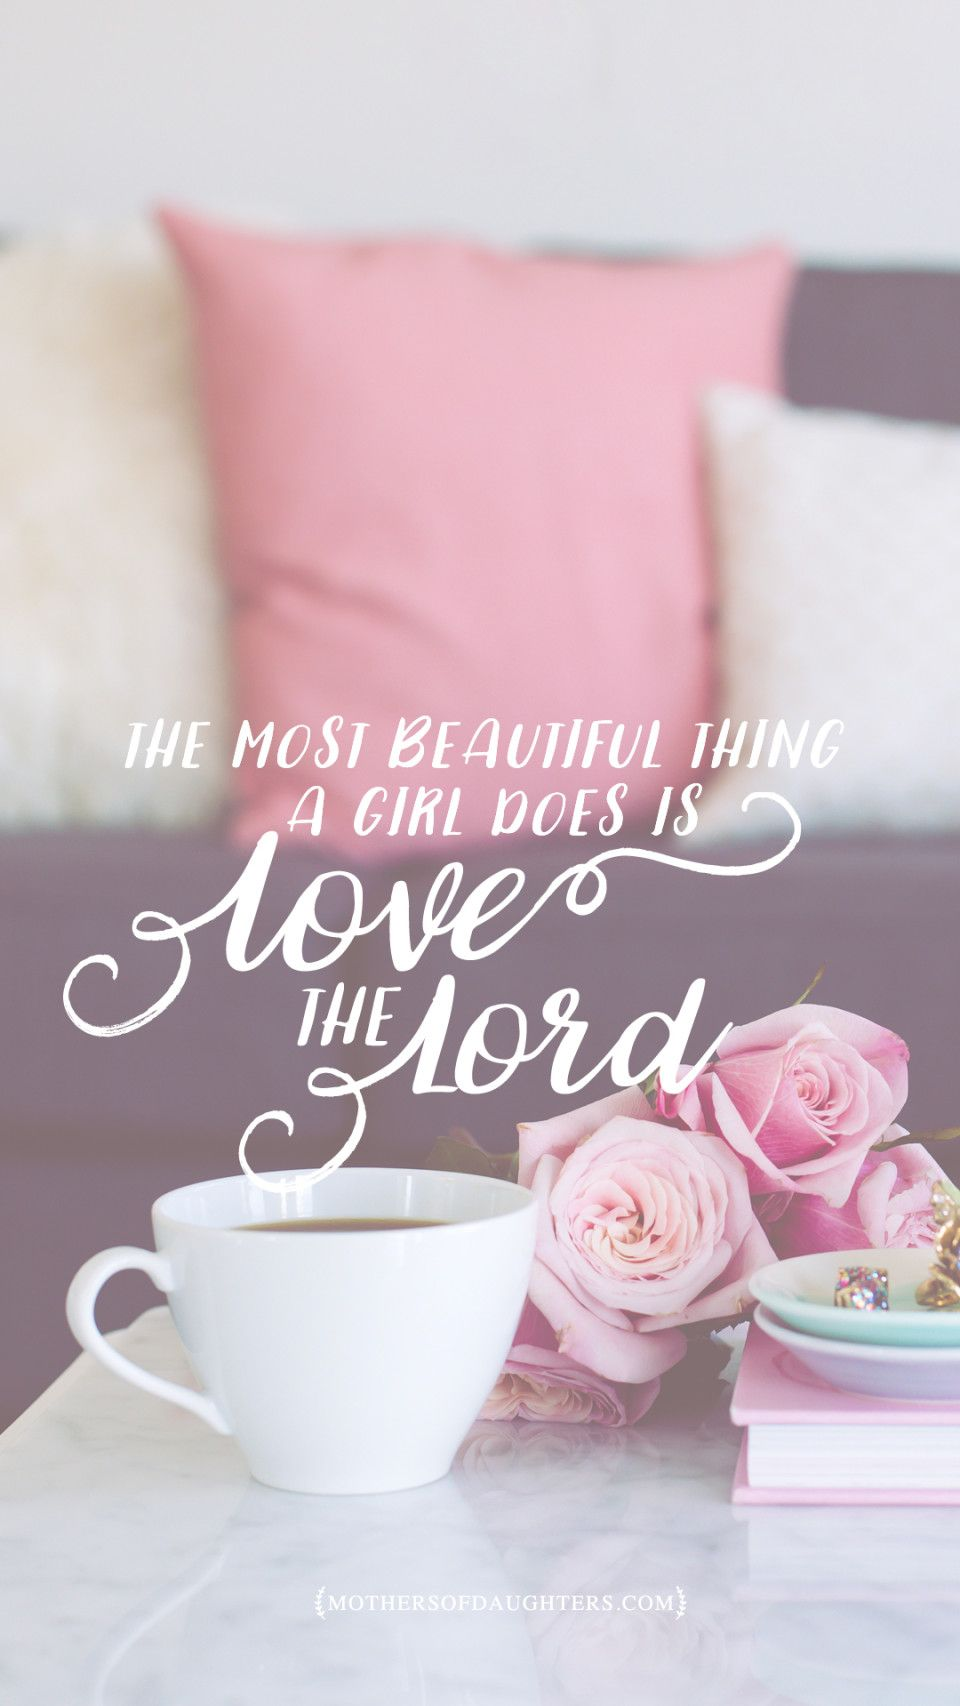 The Most Beautiful Thing A Girl Does Is Love The Lord {Free Lockscreens} | Mothers of Daughters